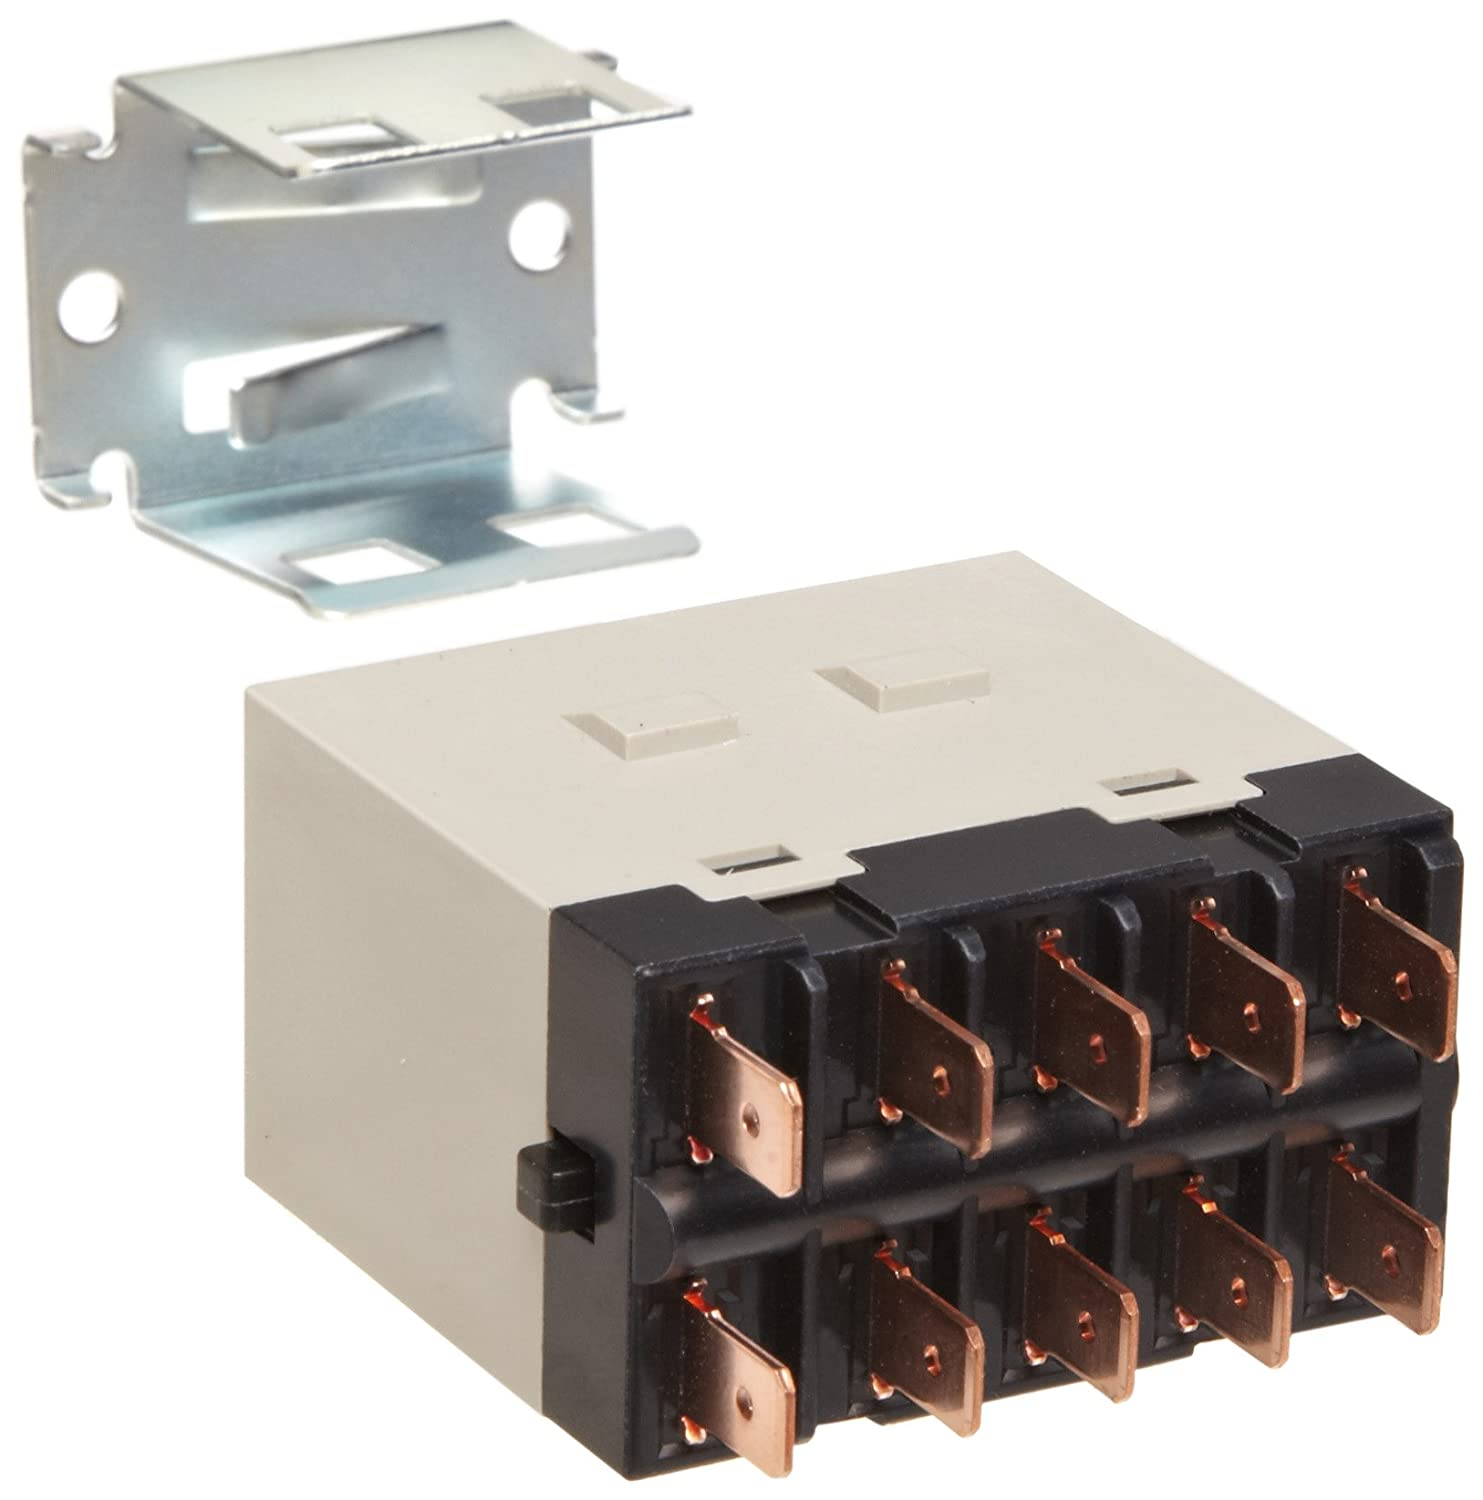 Omron G7J-3A1B-T-W1 AC100/120 General Purpose Relay With Mounting Bracket, Quick-Connect Terminal, W-Bracket Mounting, Triple Pole Single Throw Normally Open and Single Pole Single Throw Normally Closed Contacts, 18 to 21.6 mA Rated Load Current, 100 to 3 8stainless steel solenoid valves normally closed ip65 square coil air water oil gas